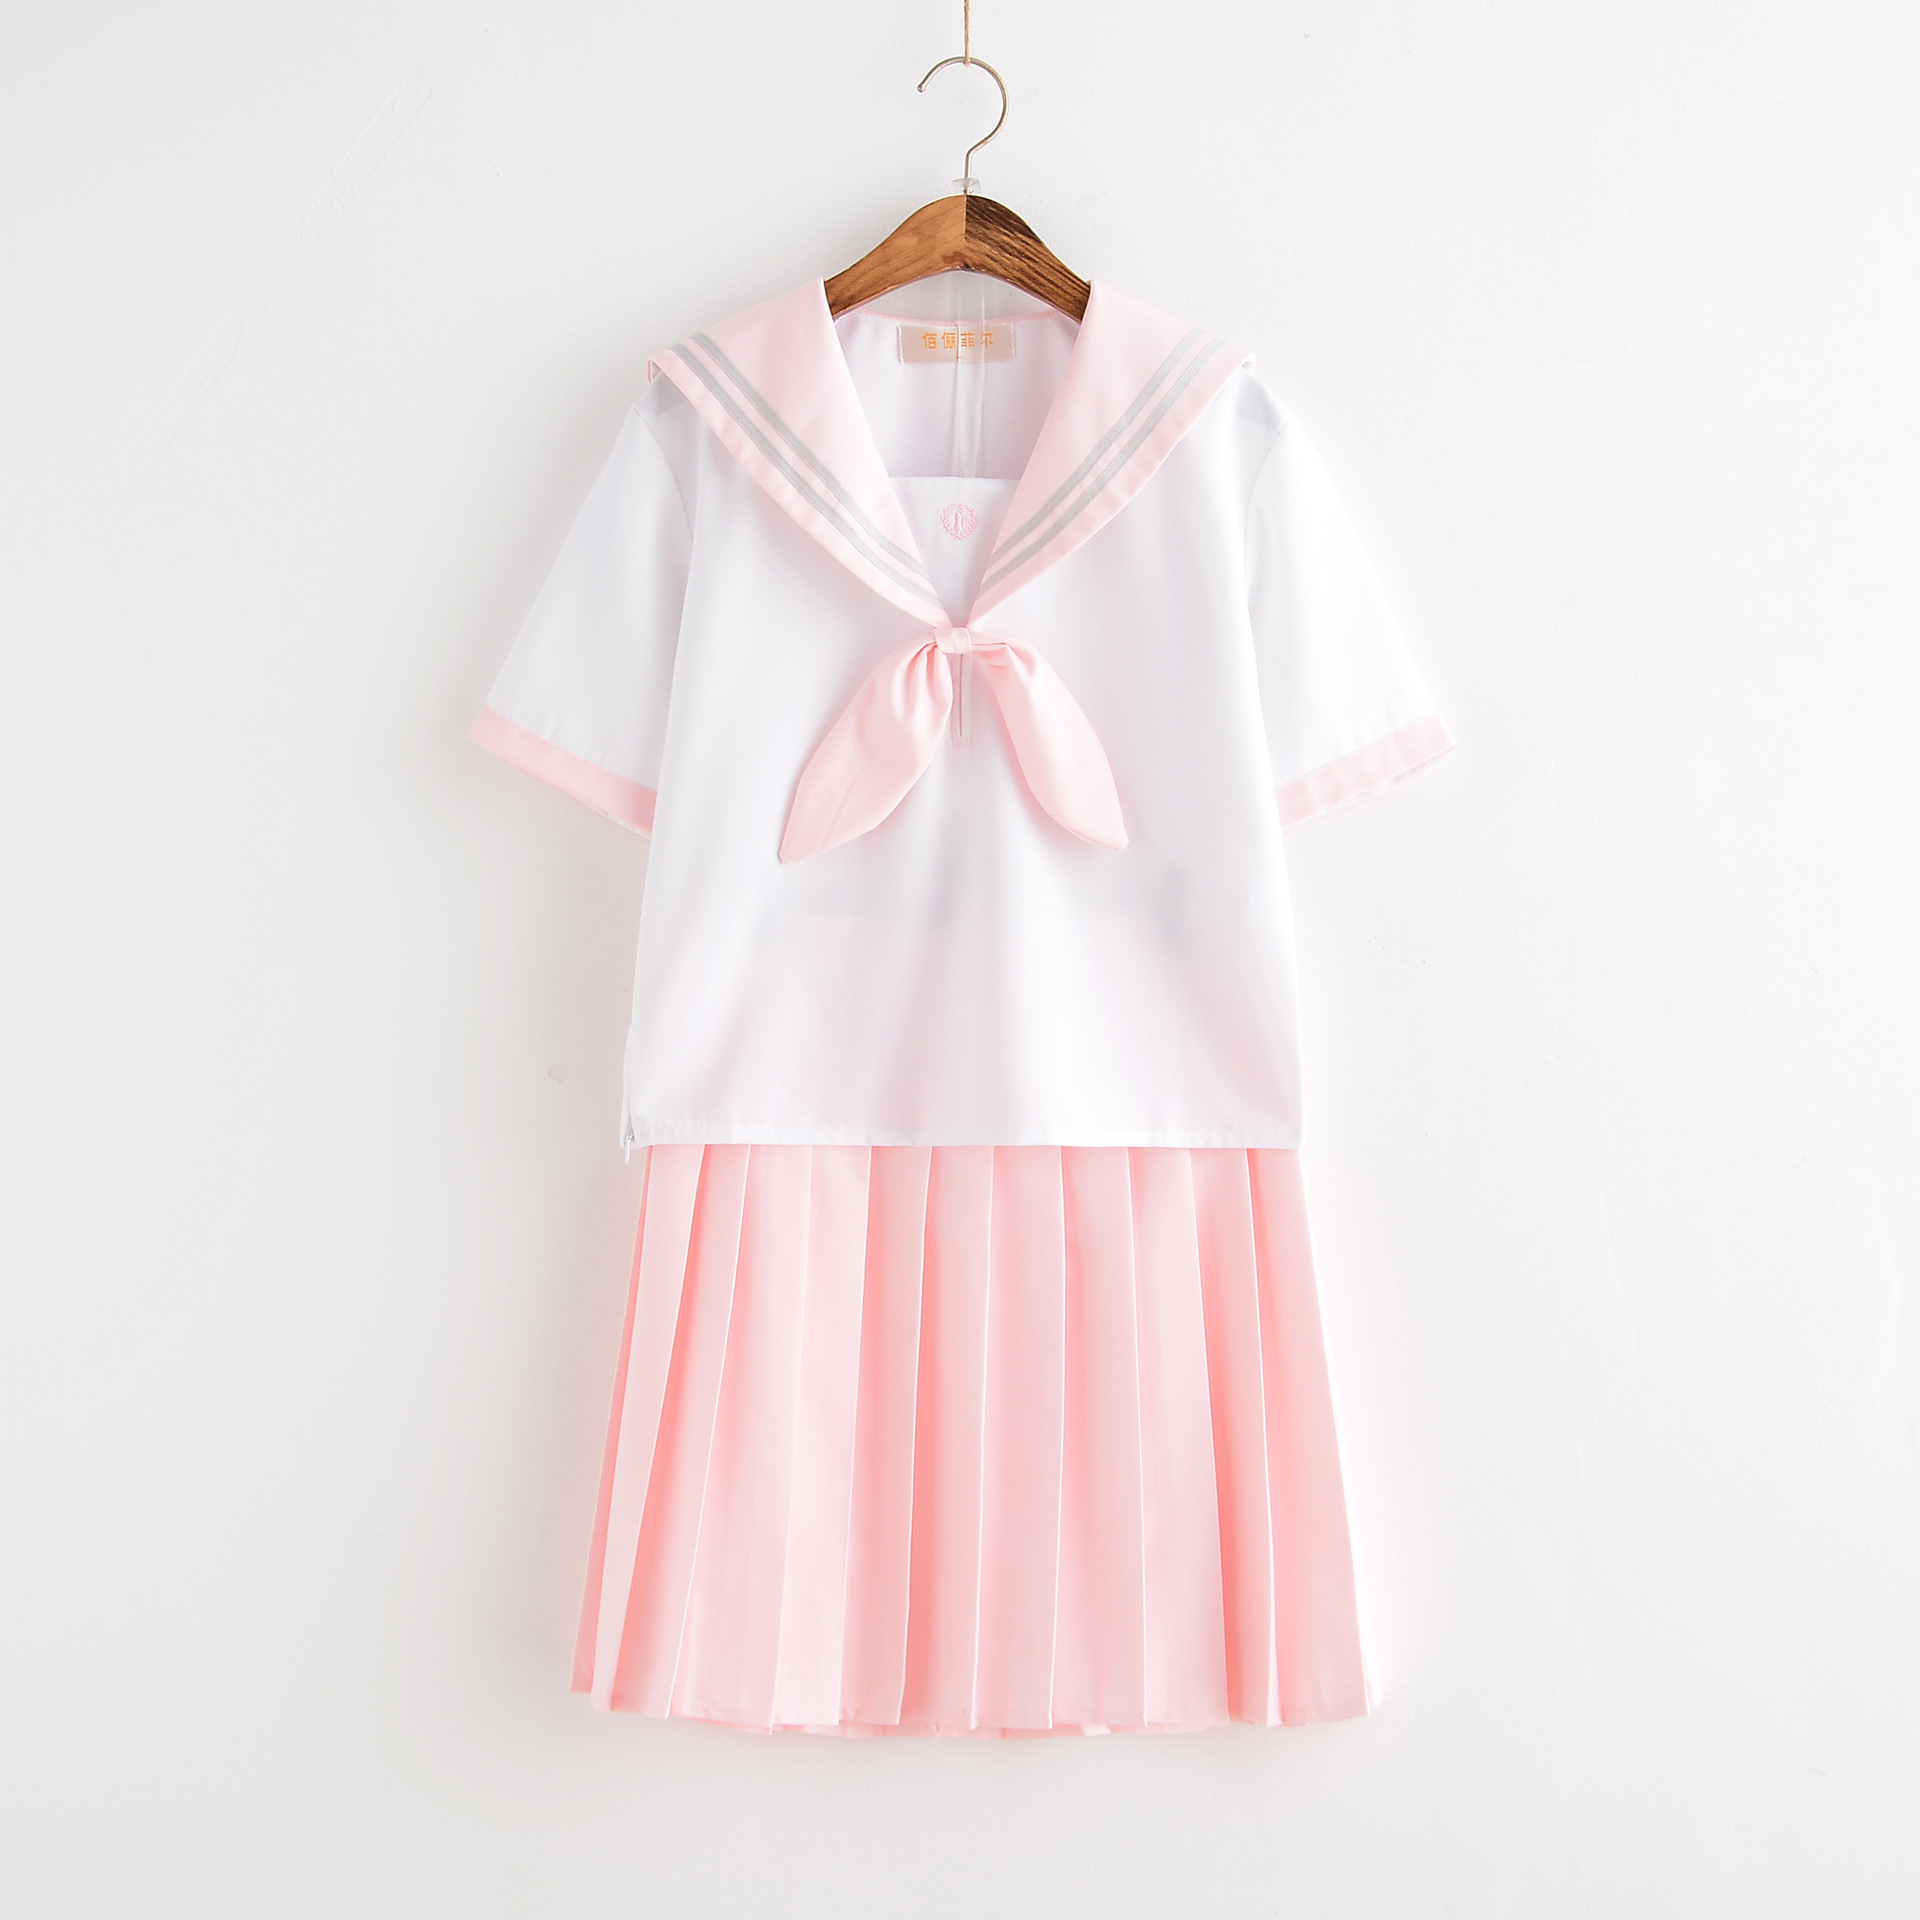 Japanese School Uniform For Girls Sailor Pink Mint Style Students Clothes For Girl Plus Size Lala Cheerleader Clothing